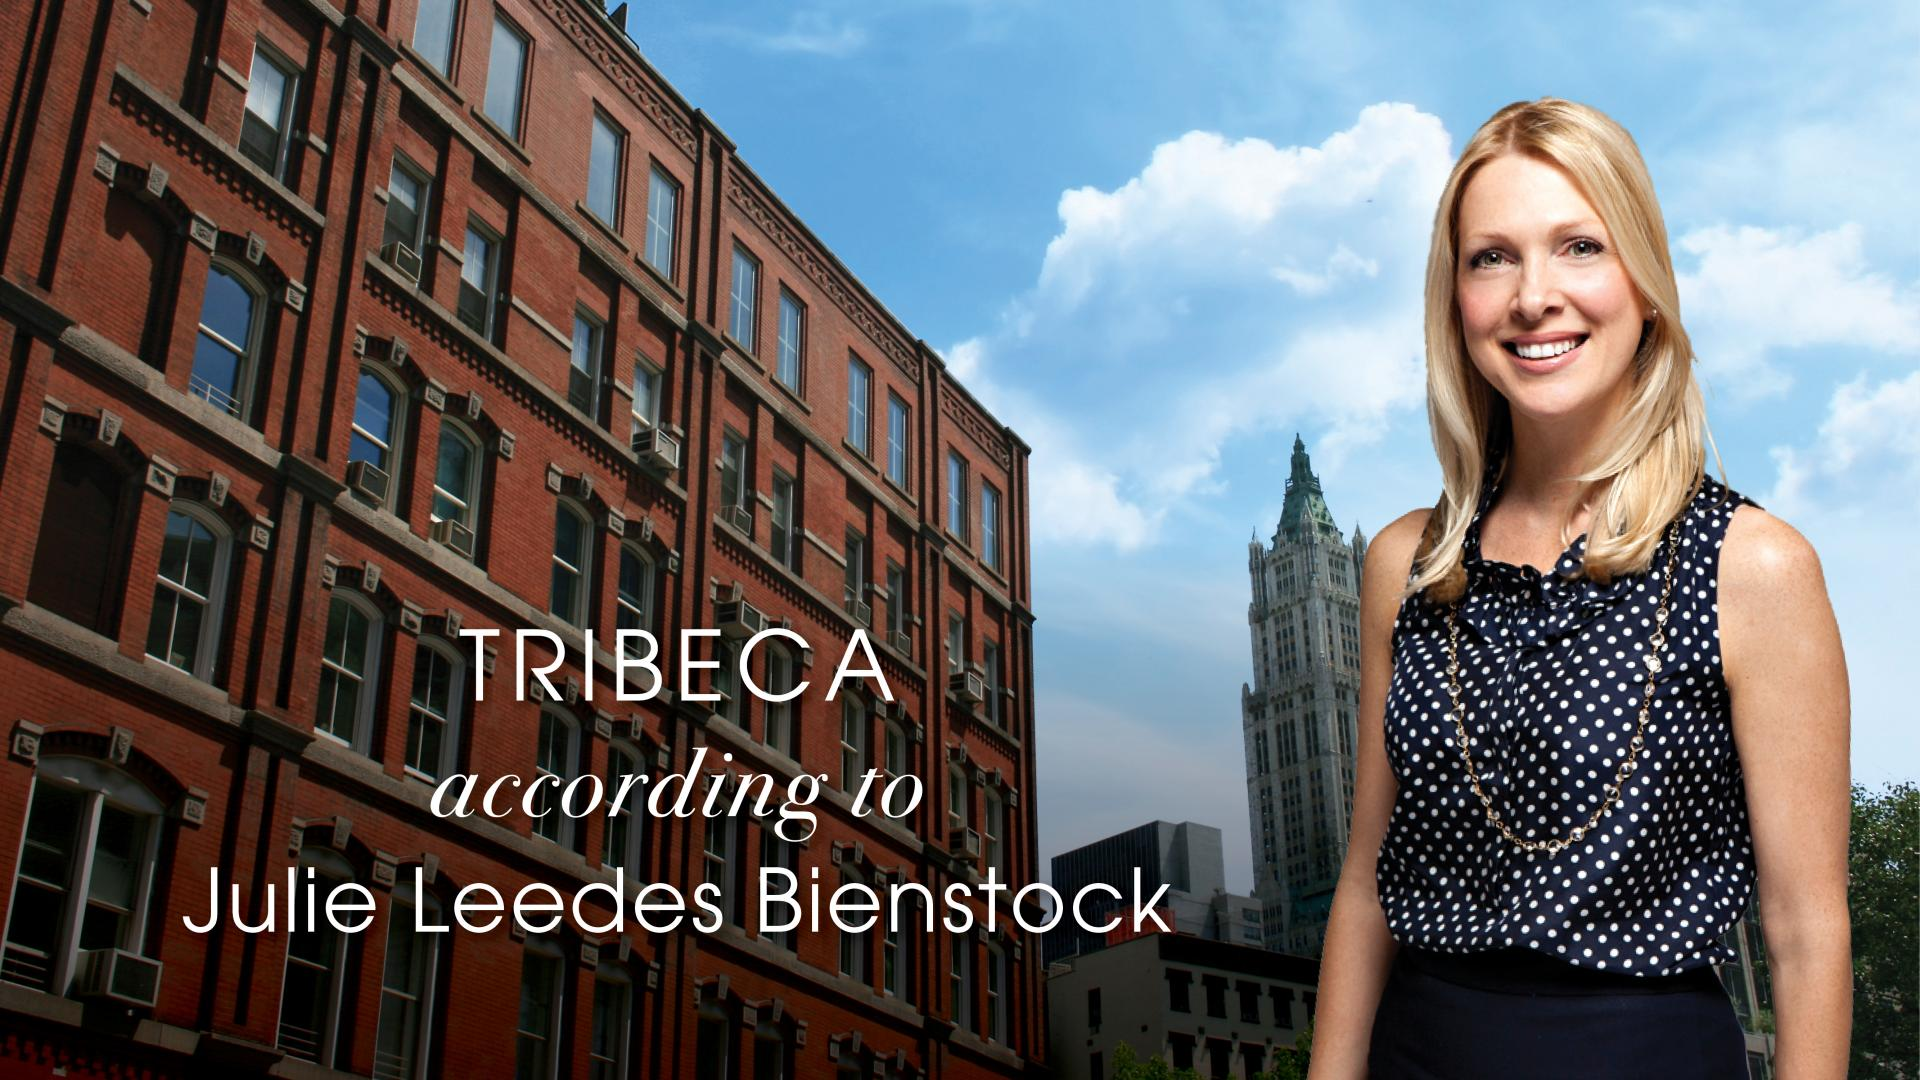 Tribeca According to Julie Leedes Bienstock